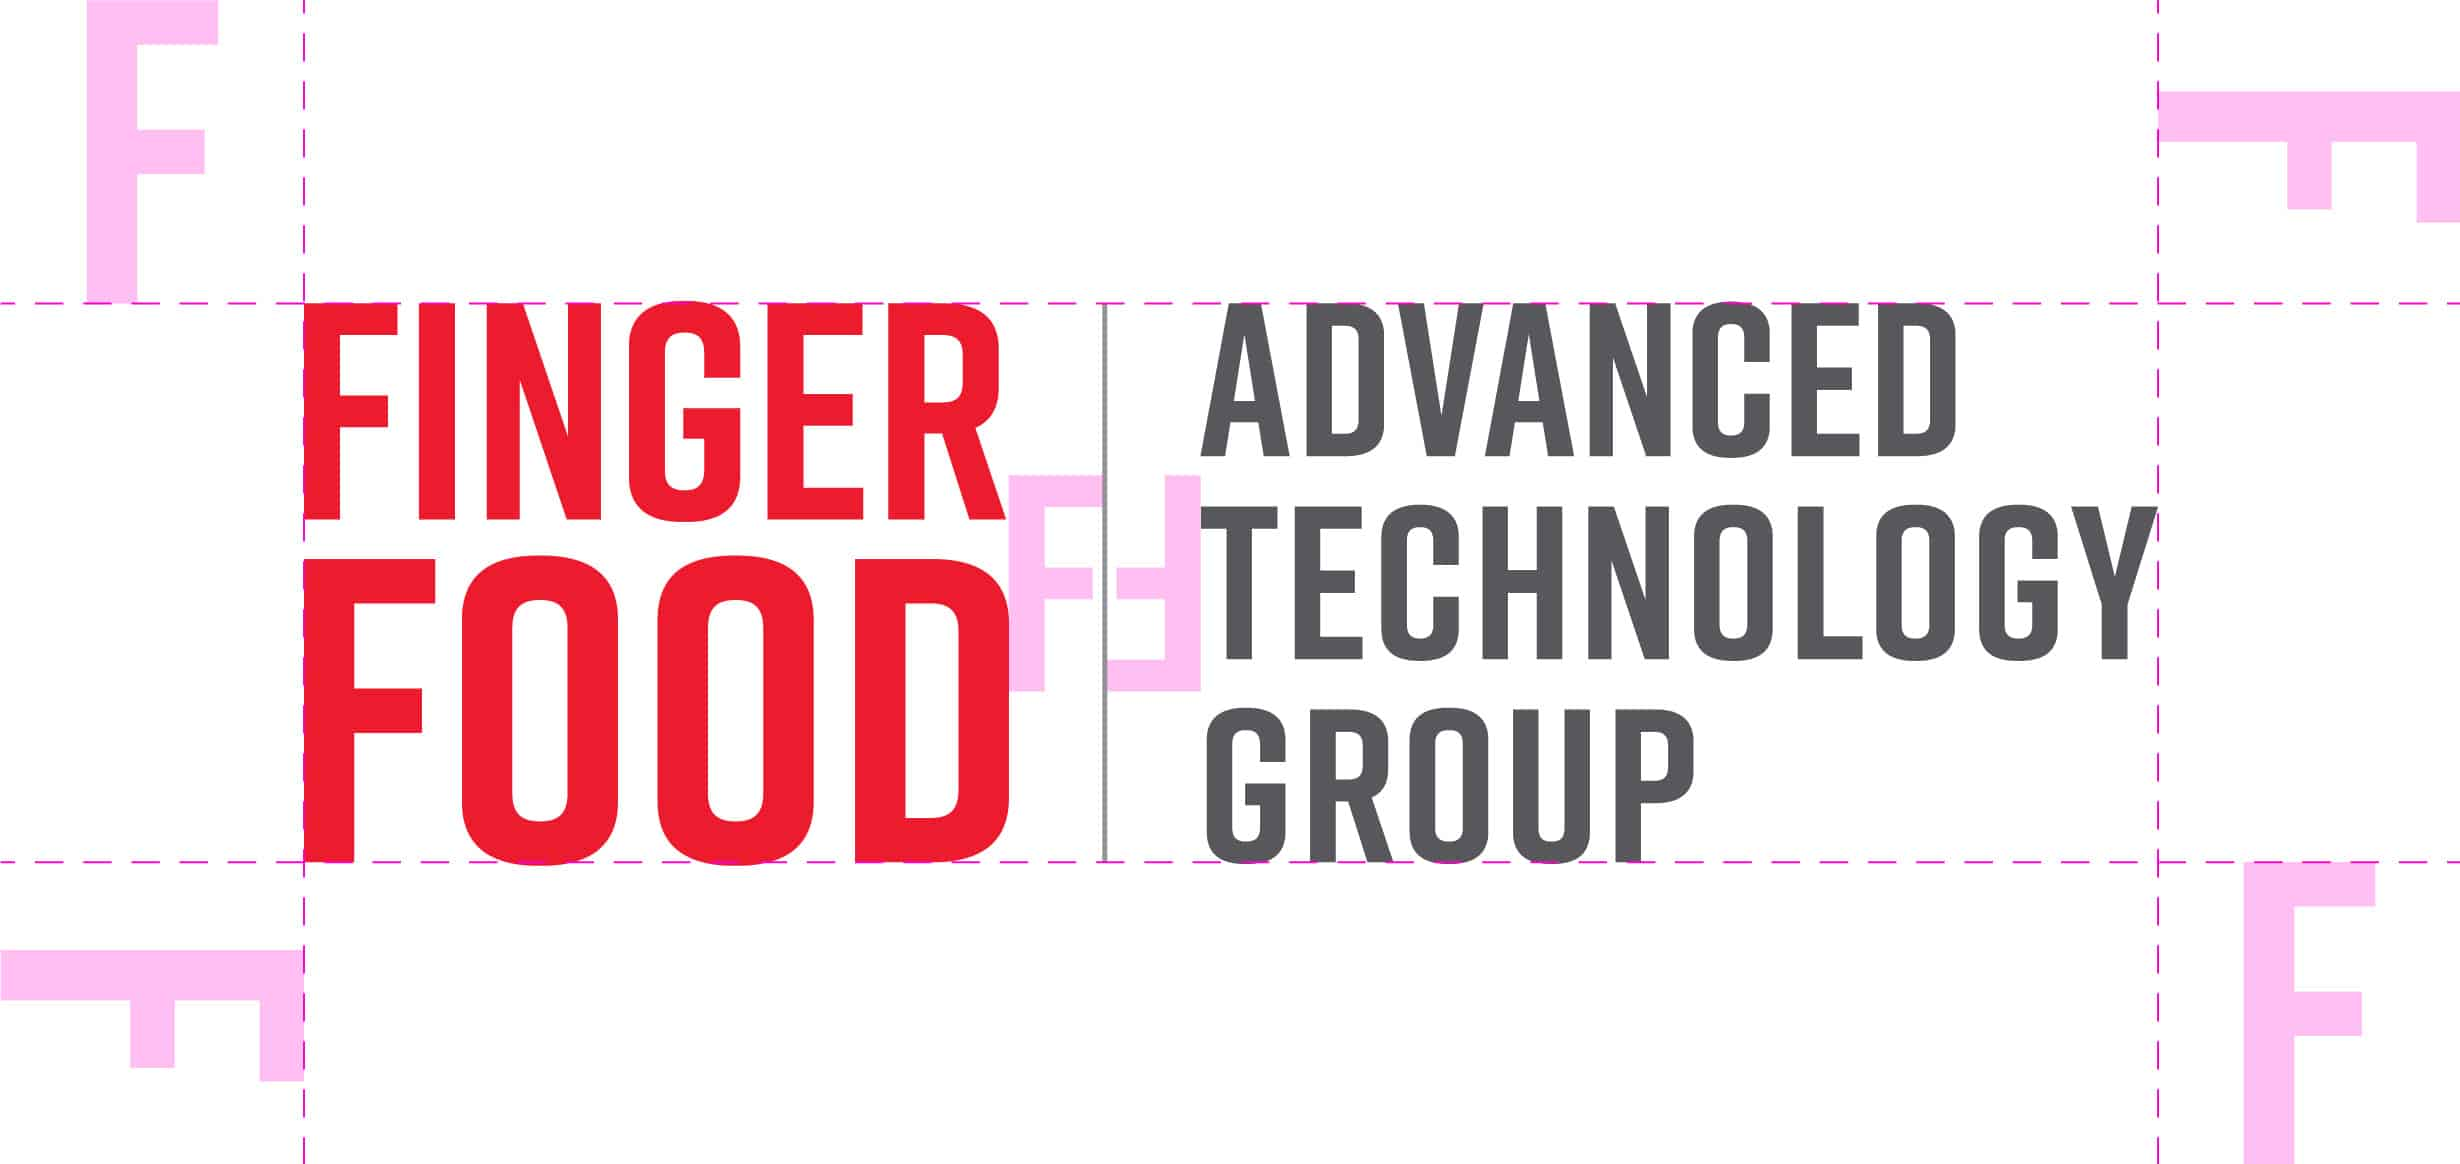 Finger Food ATG Logo Alignment Guide